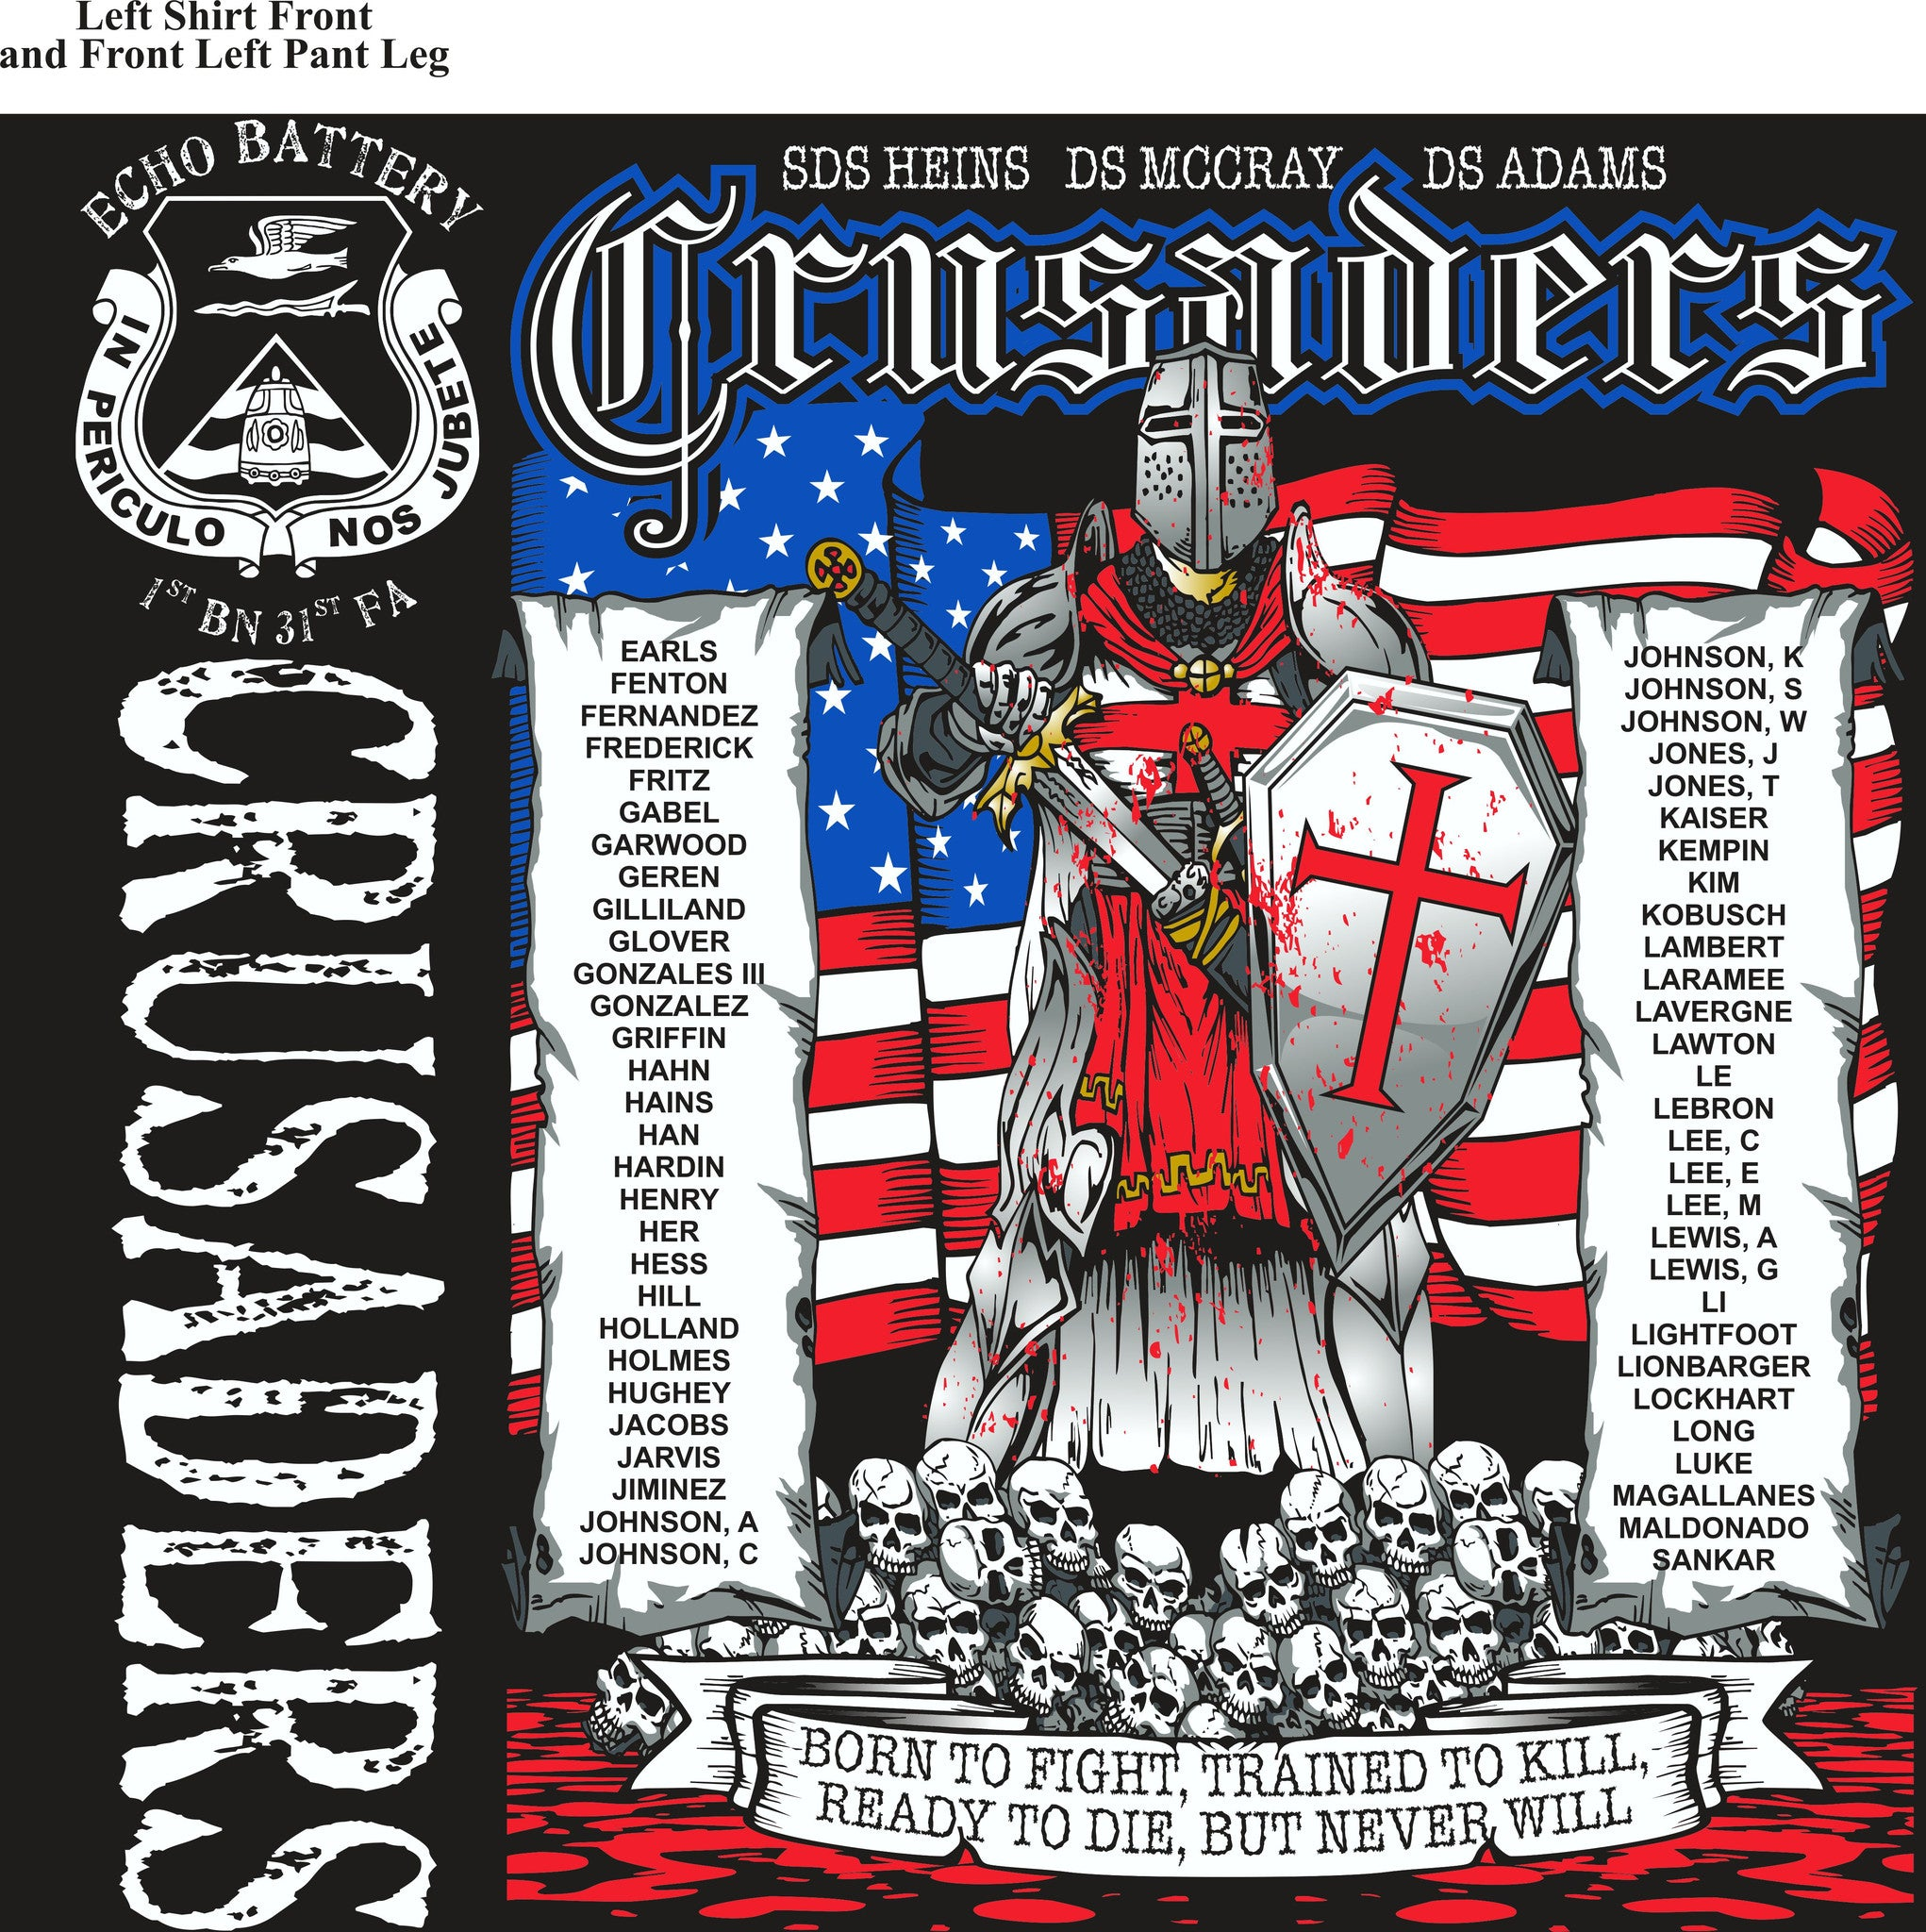 PLATOON SHIRTS (2nd generation print) ECHO 1st 31st CRUSADERS AUG 2016